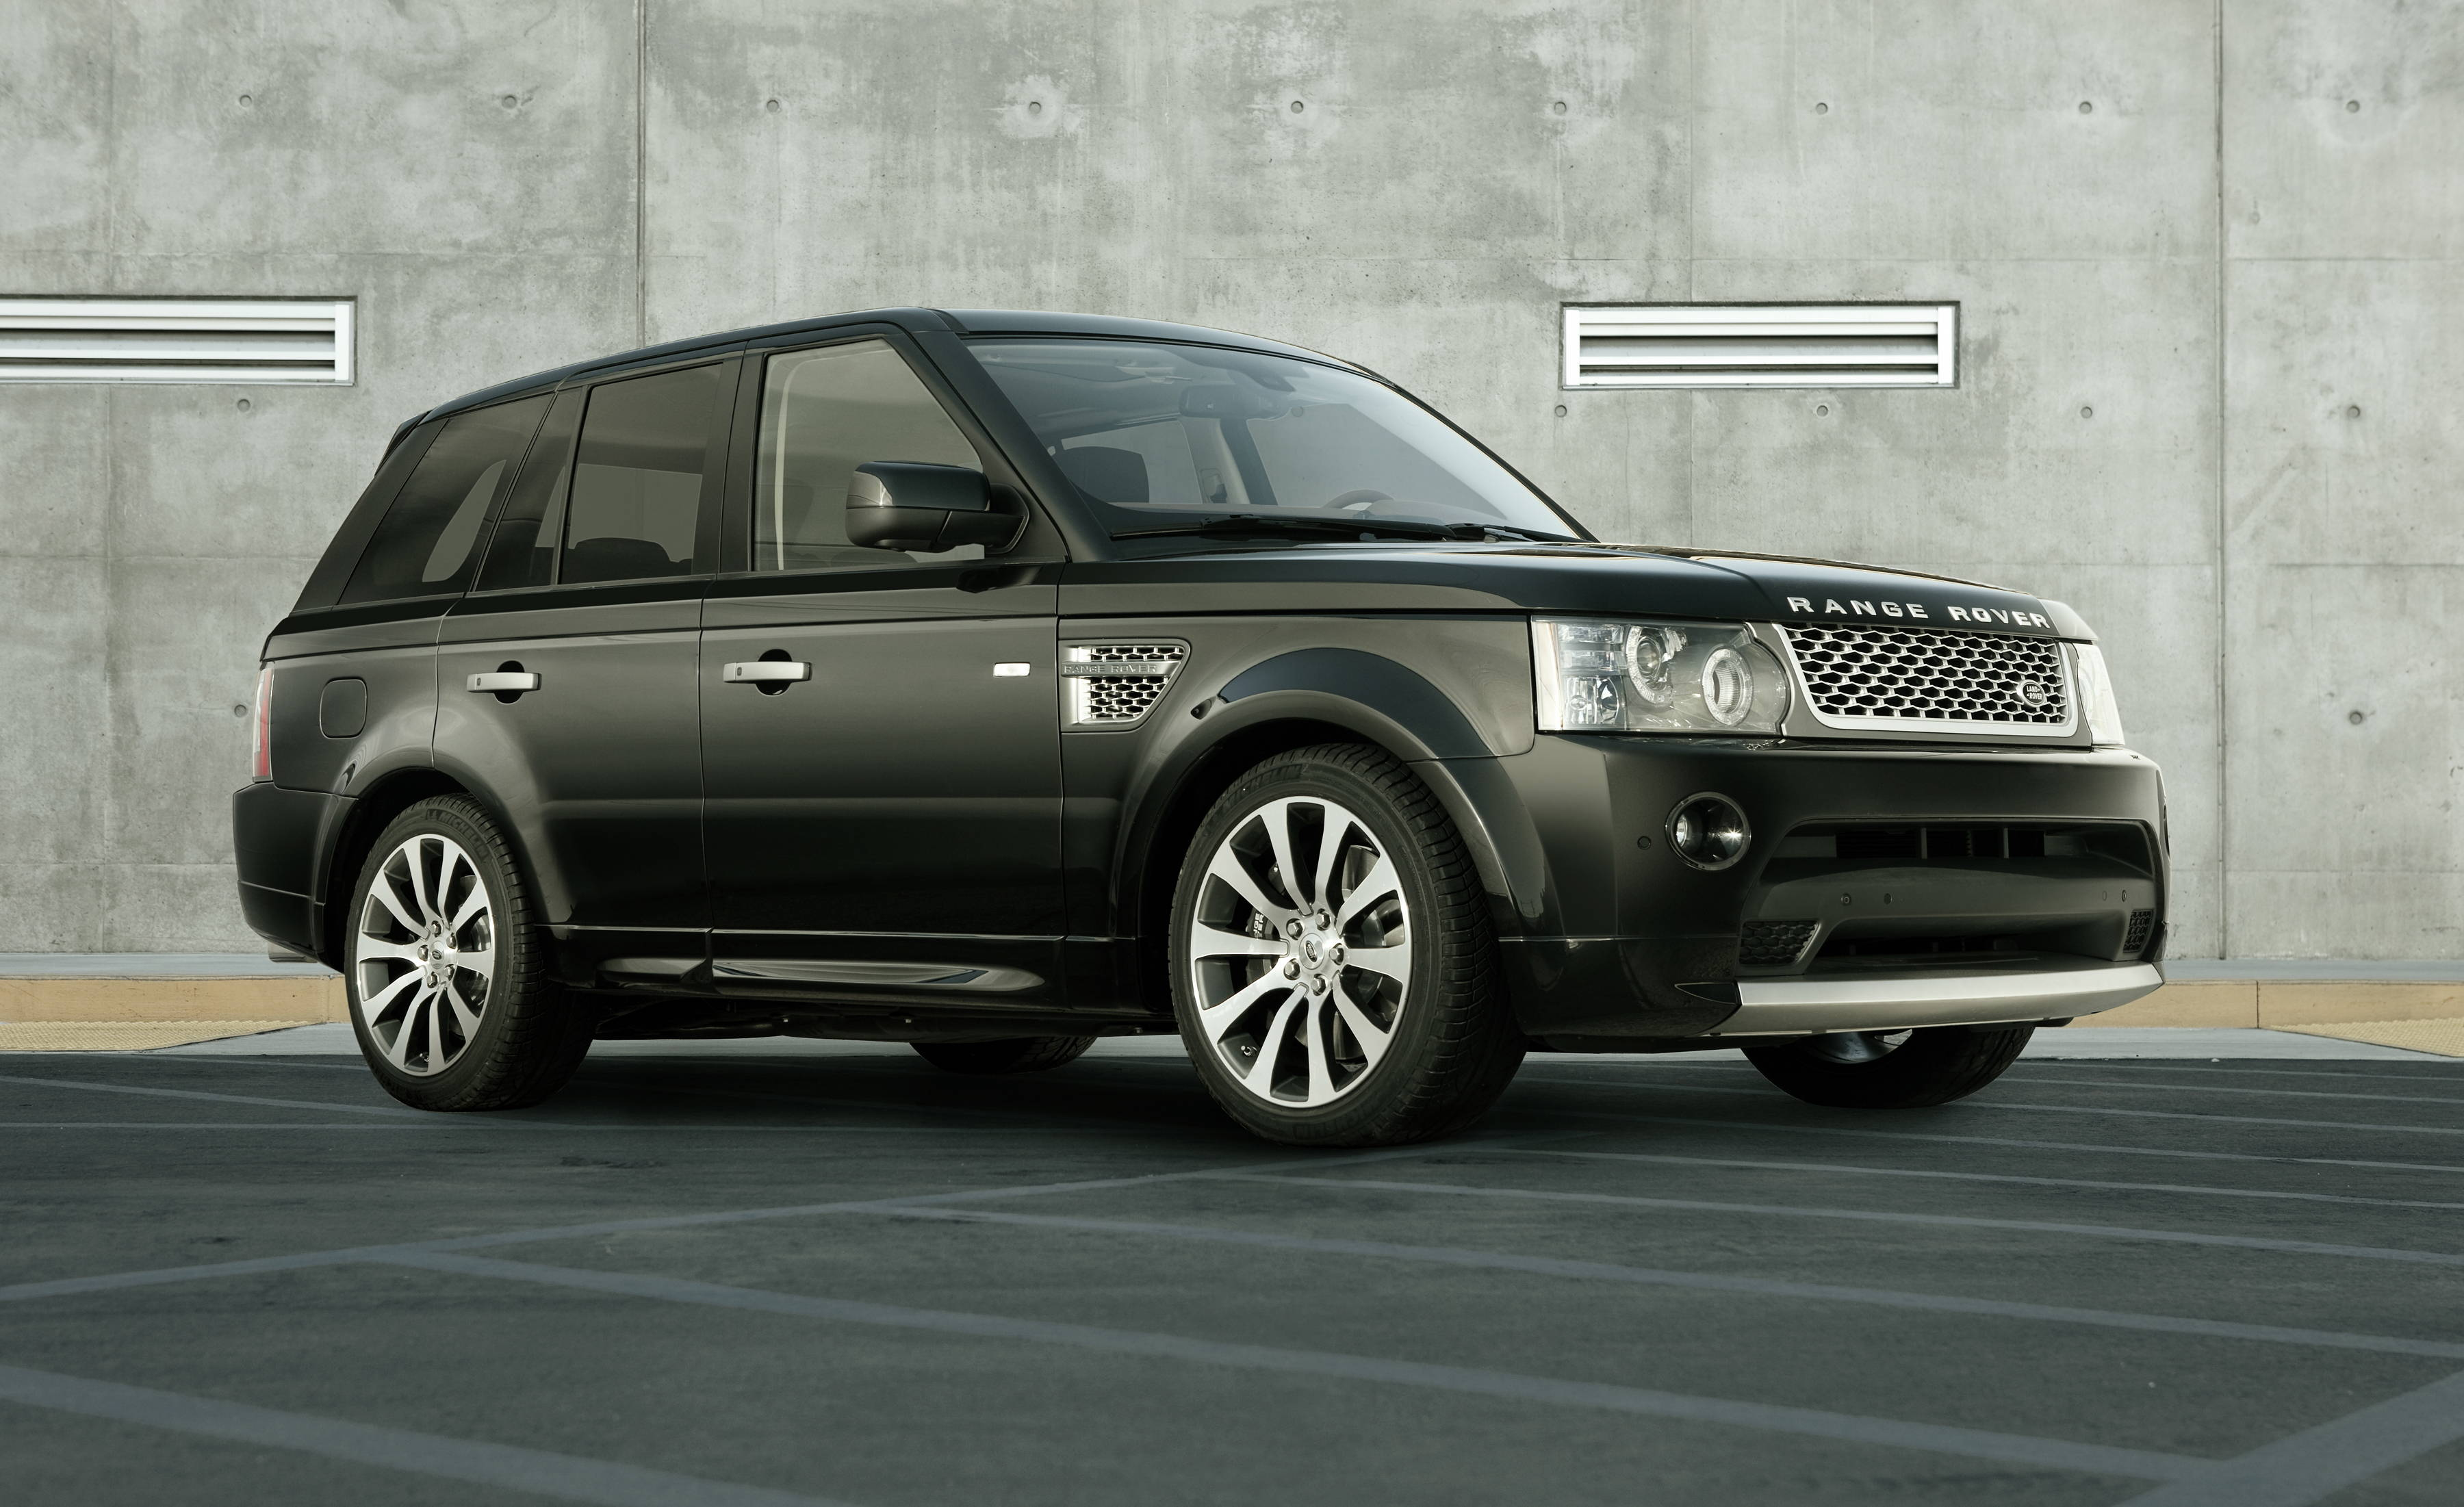 Land Rover Range Rover Sport Information and photos MOMENTcar